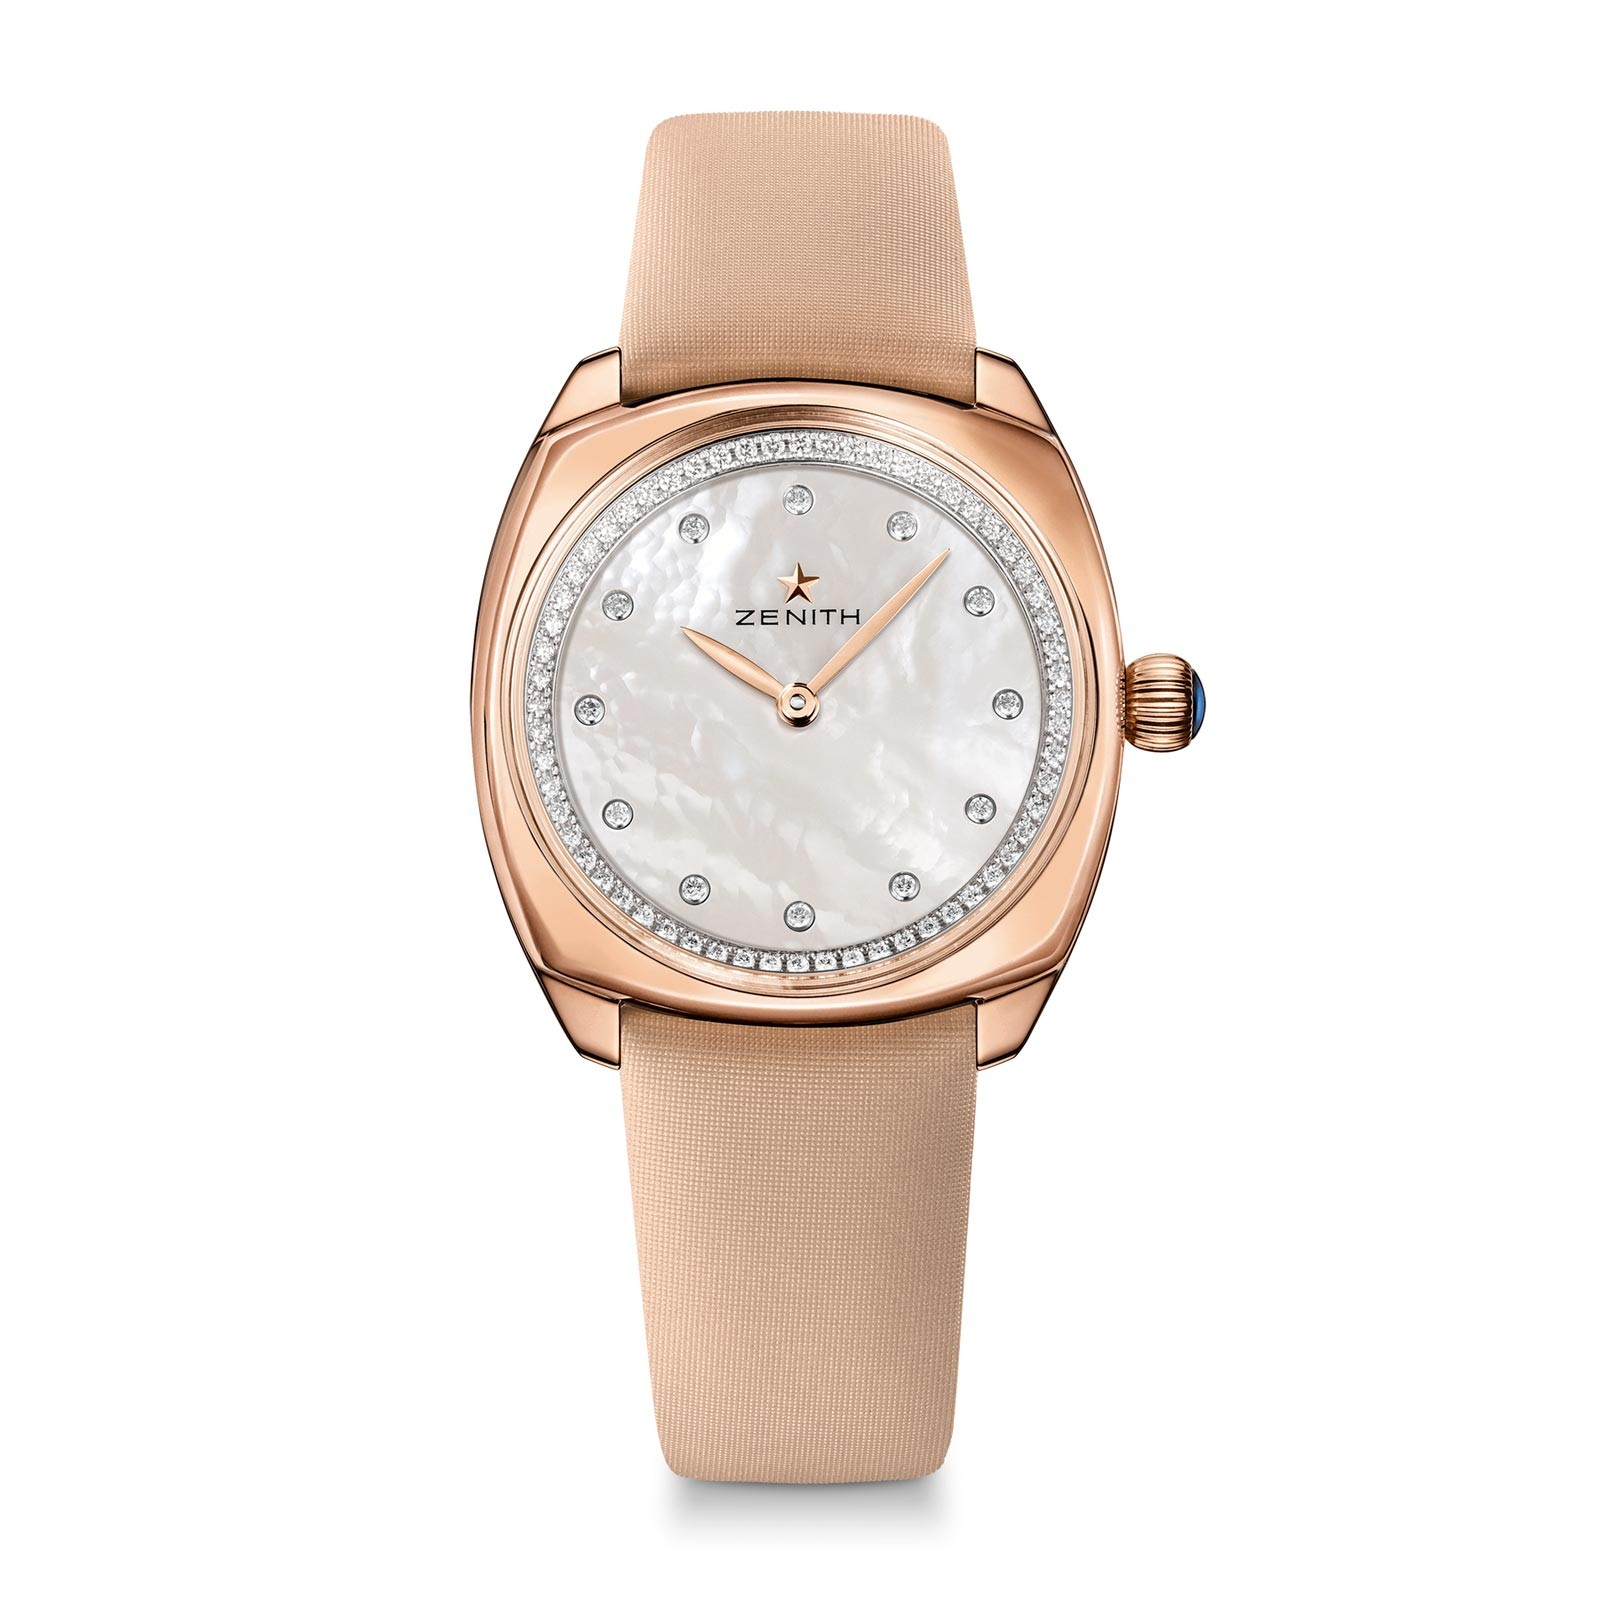 Zenith Star 33mm - Rose Gold Cushion Shaped Case